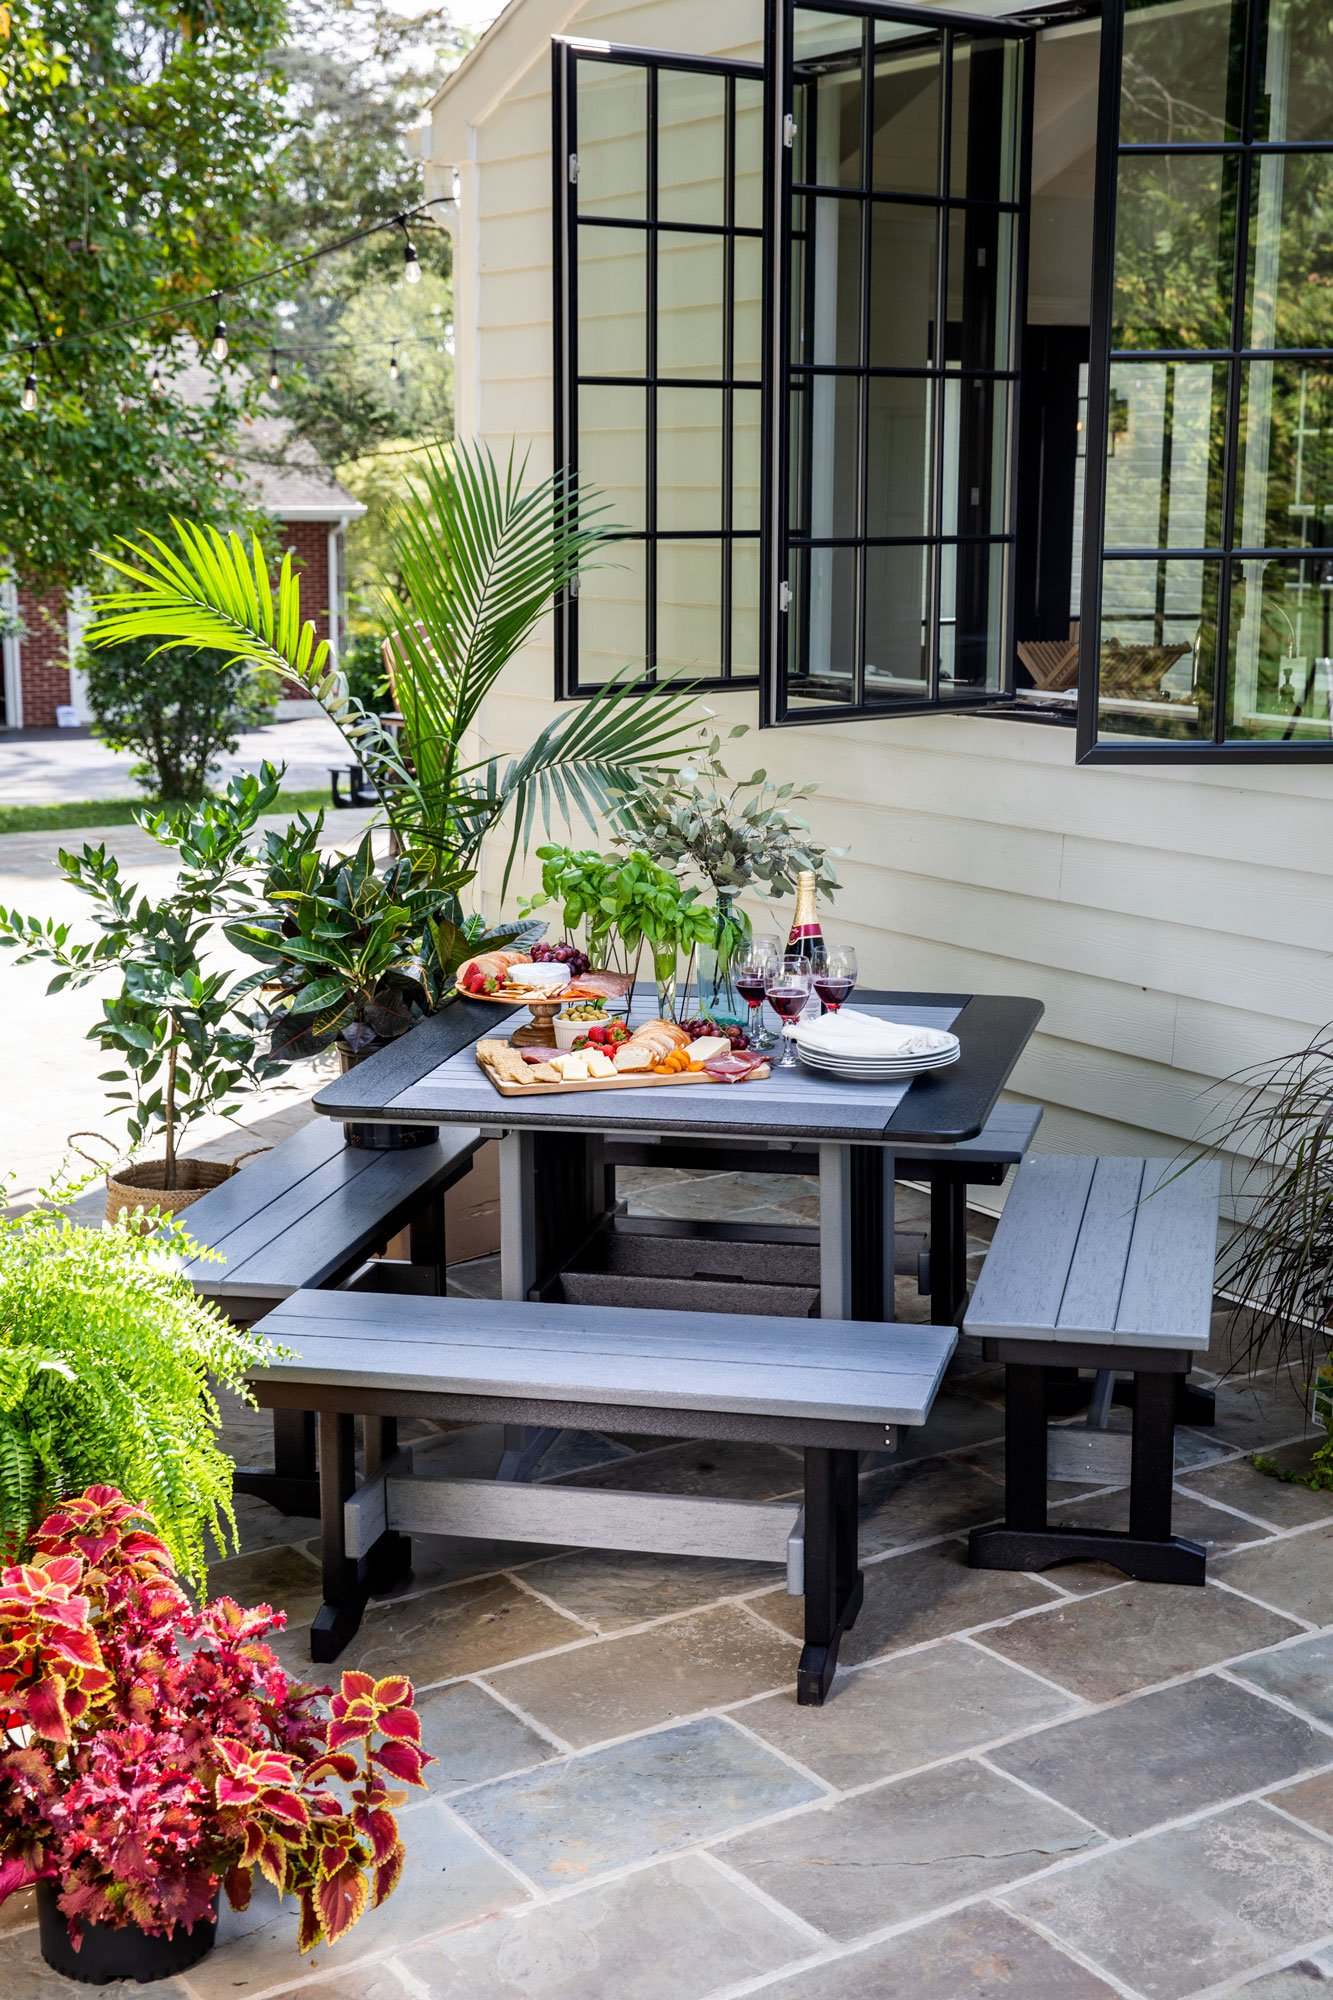 Dining-Benches-and-Table